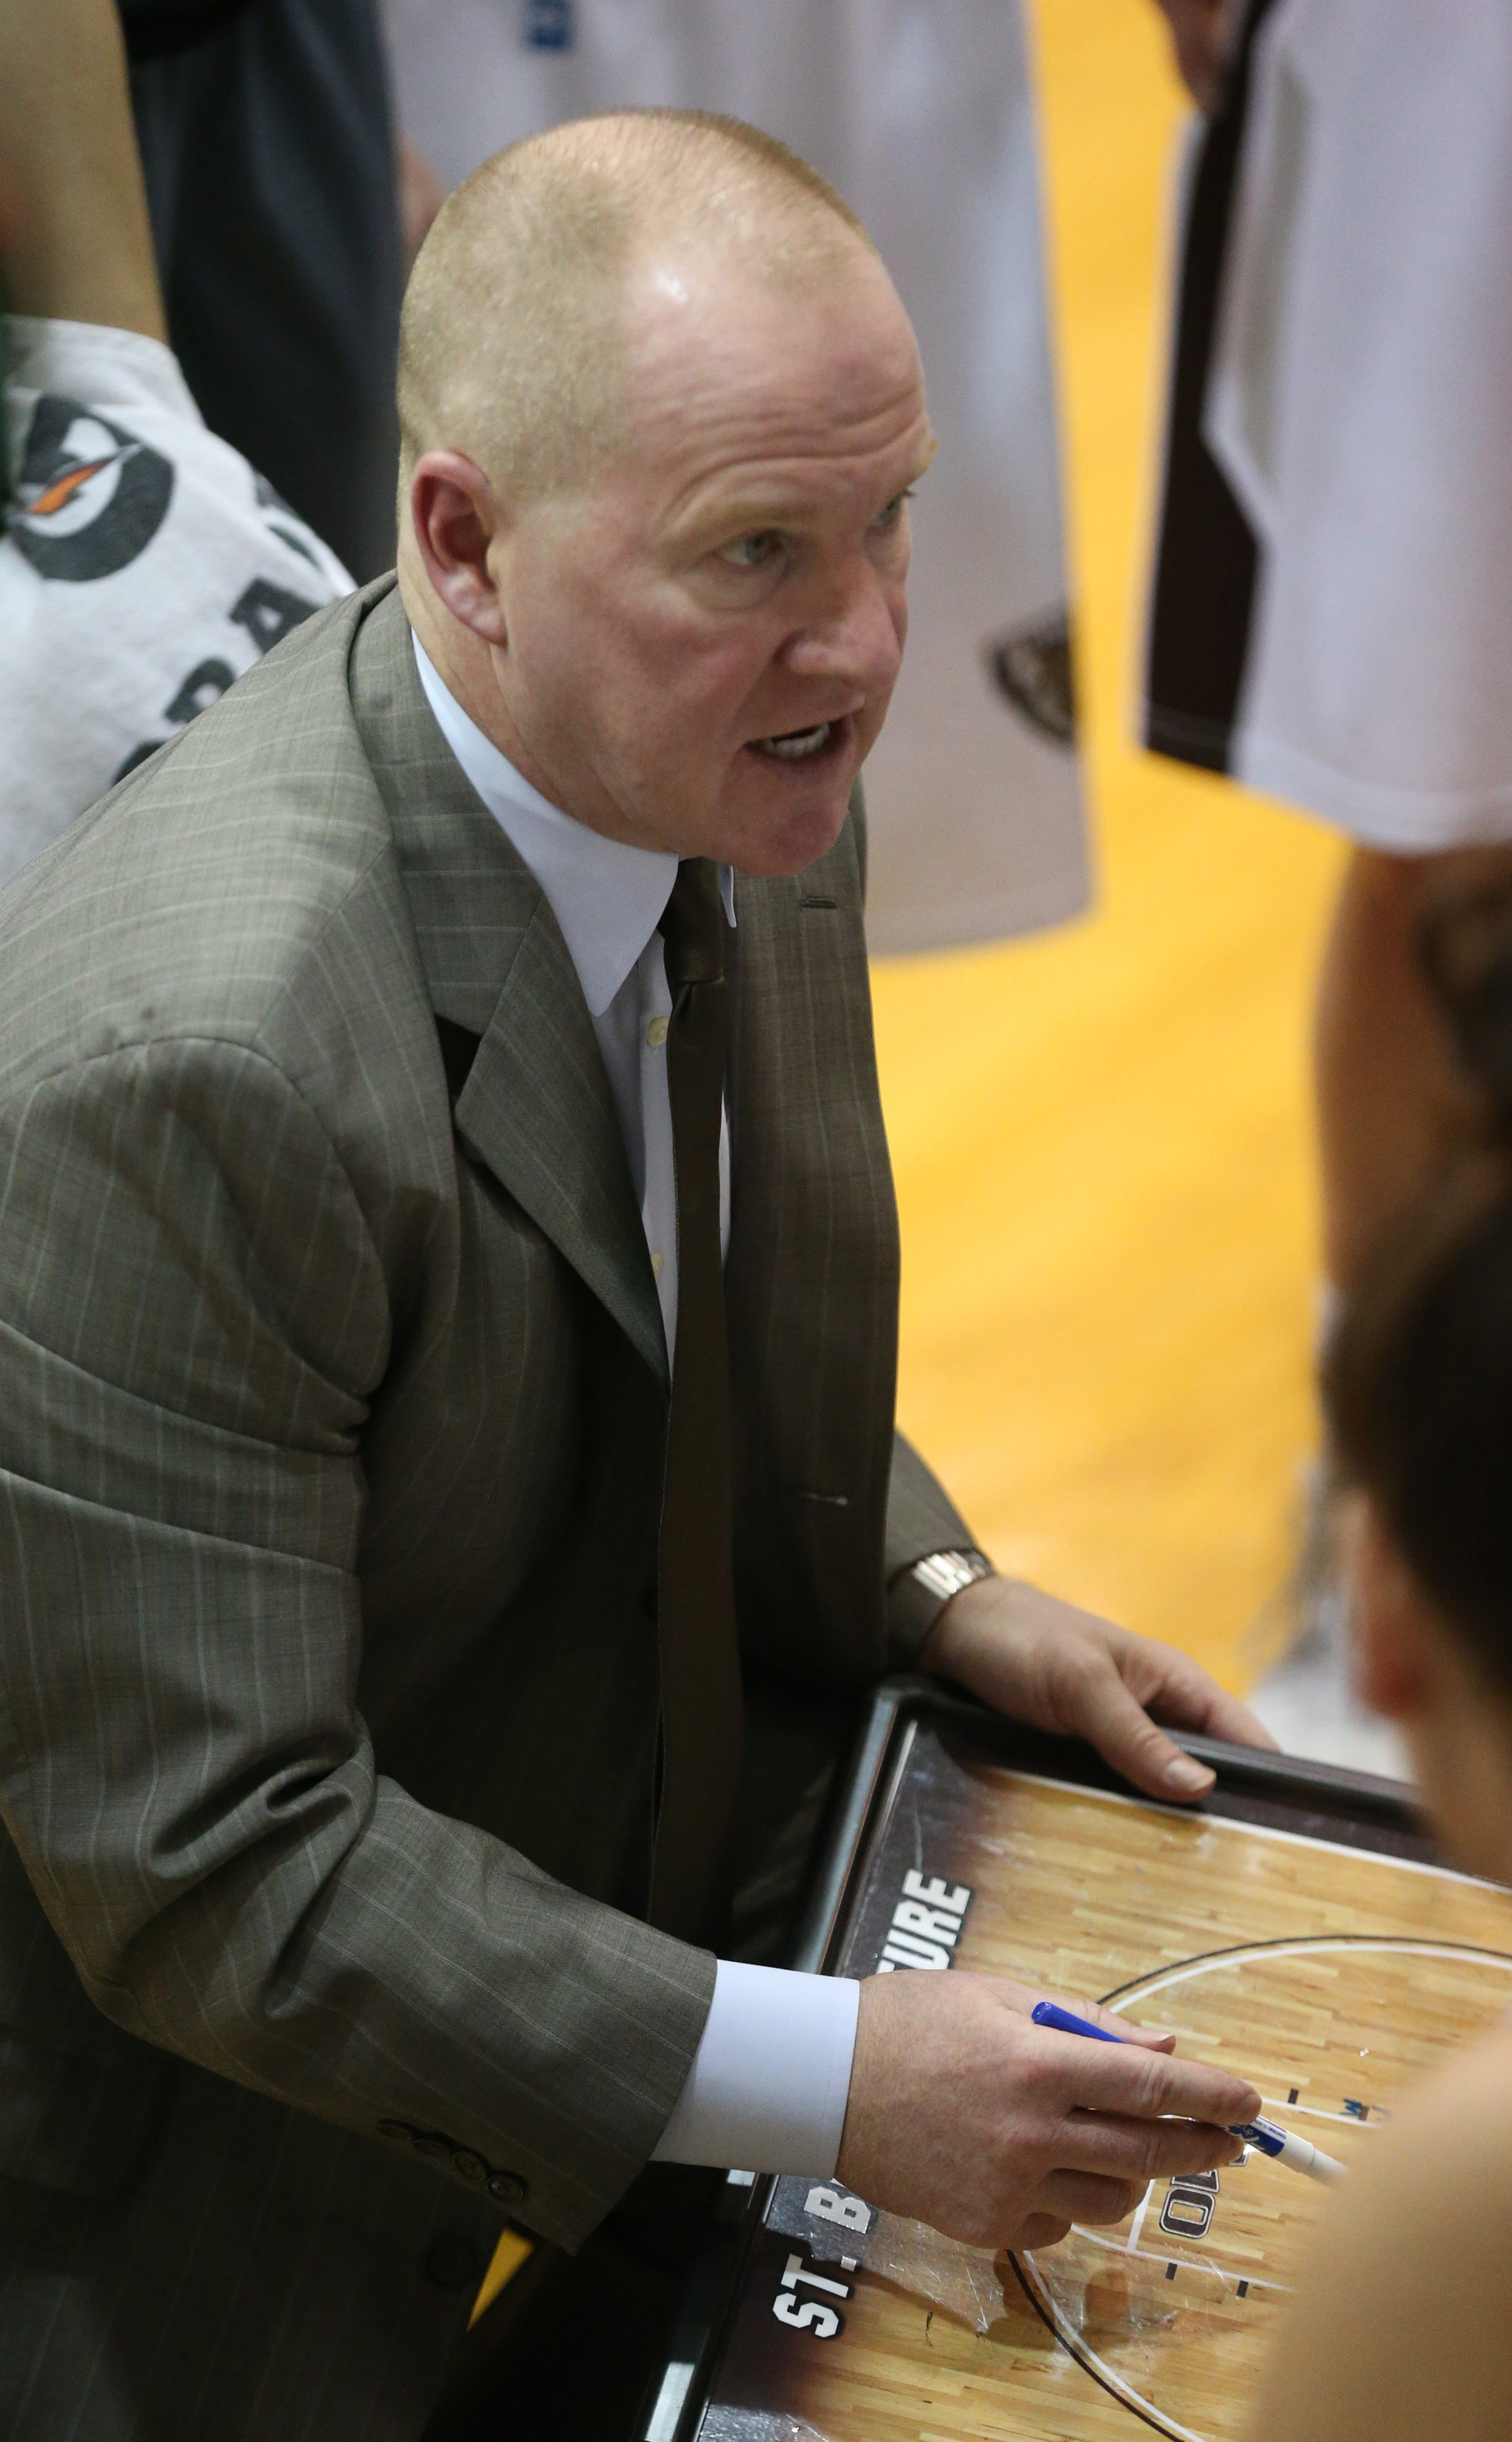 St. Bonaventure Bonnies head coach Jim Crowley calls a play during a time out in the fourth quarter at St Bonaventure University's Bob Lanier Court Reilly Center in Olean,NY on Sunday, Jan. 31, 2016. (James P. McCoy/ Buffalo News)